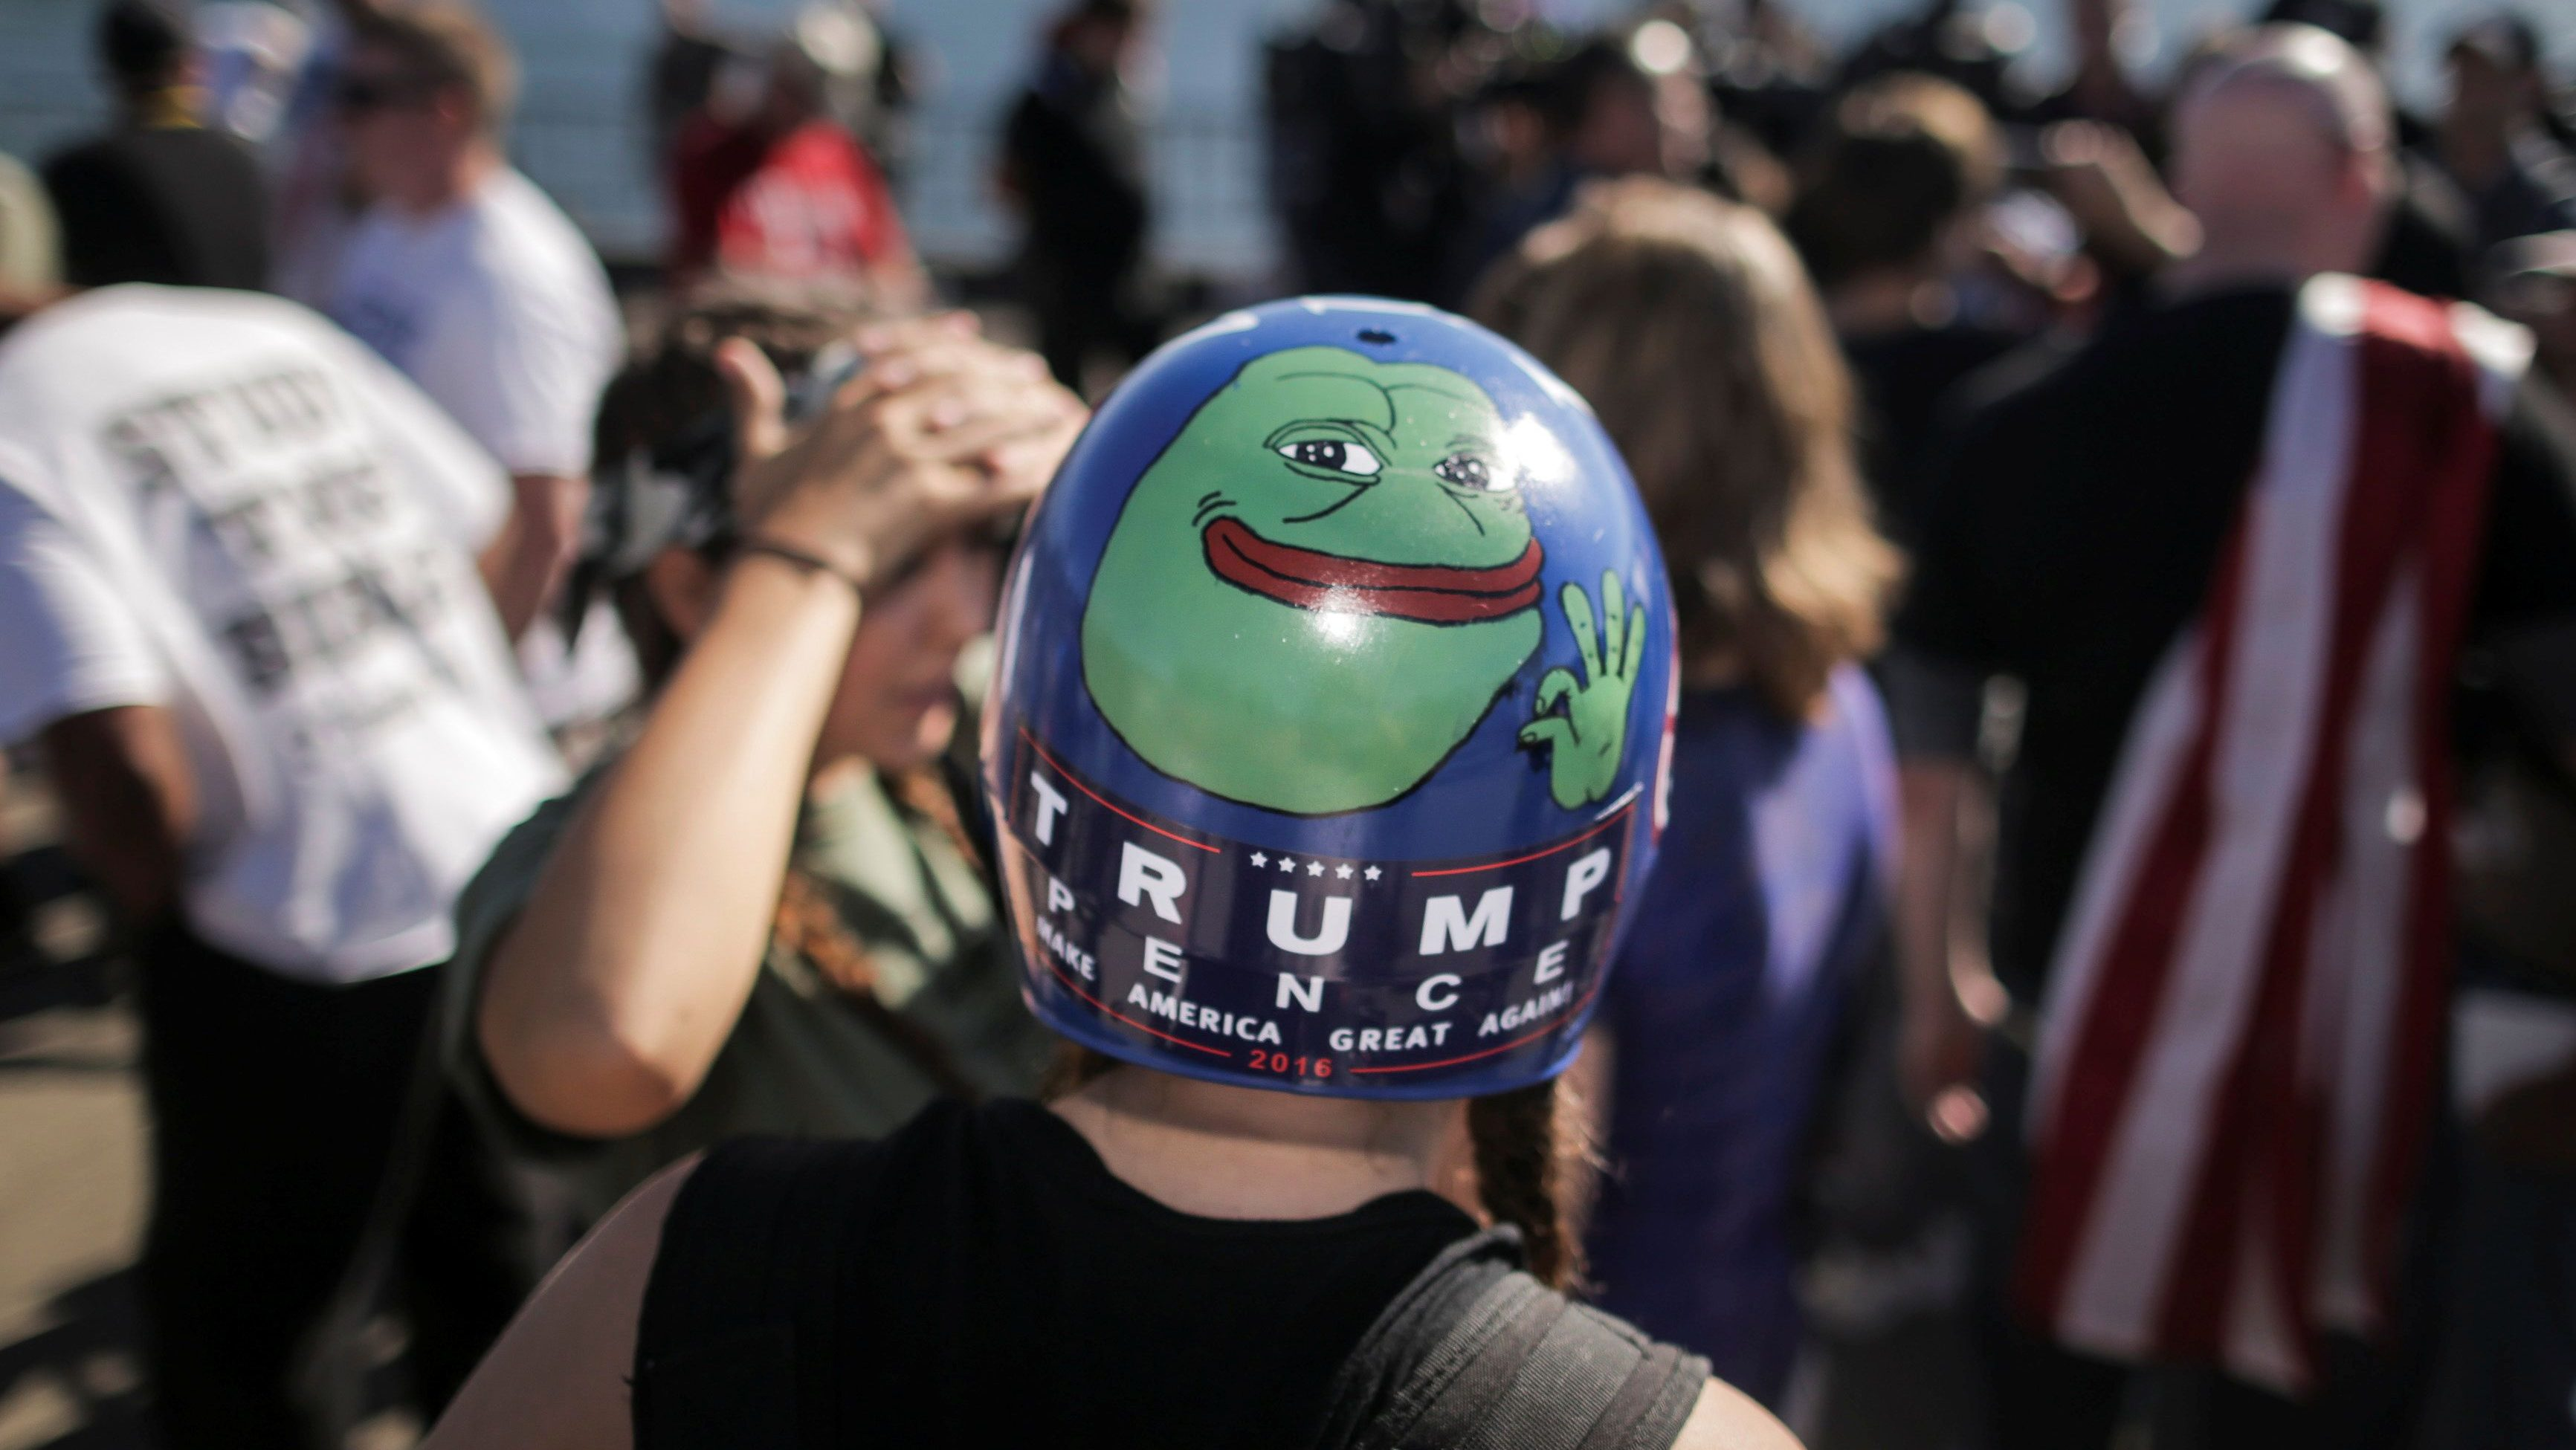 Jaeda Ferrel, of Seattle, wears a helmet adorned with an image of Pepe the frog that she hand-painted and a Trump/Pence sticker at a rally organized by the right-wing group Patriot Prayer in Vancouver, Washington, U.S. September 10, 2017.